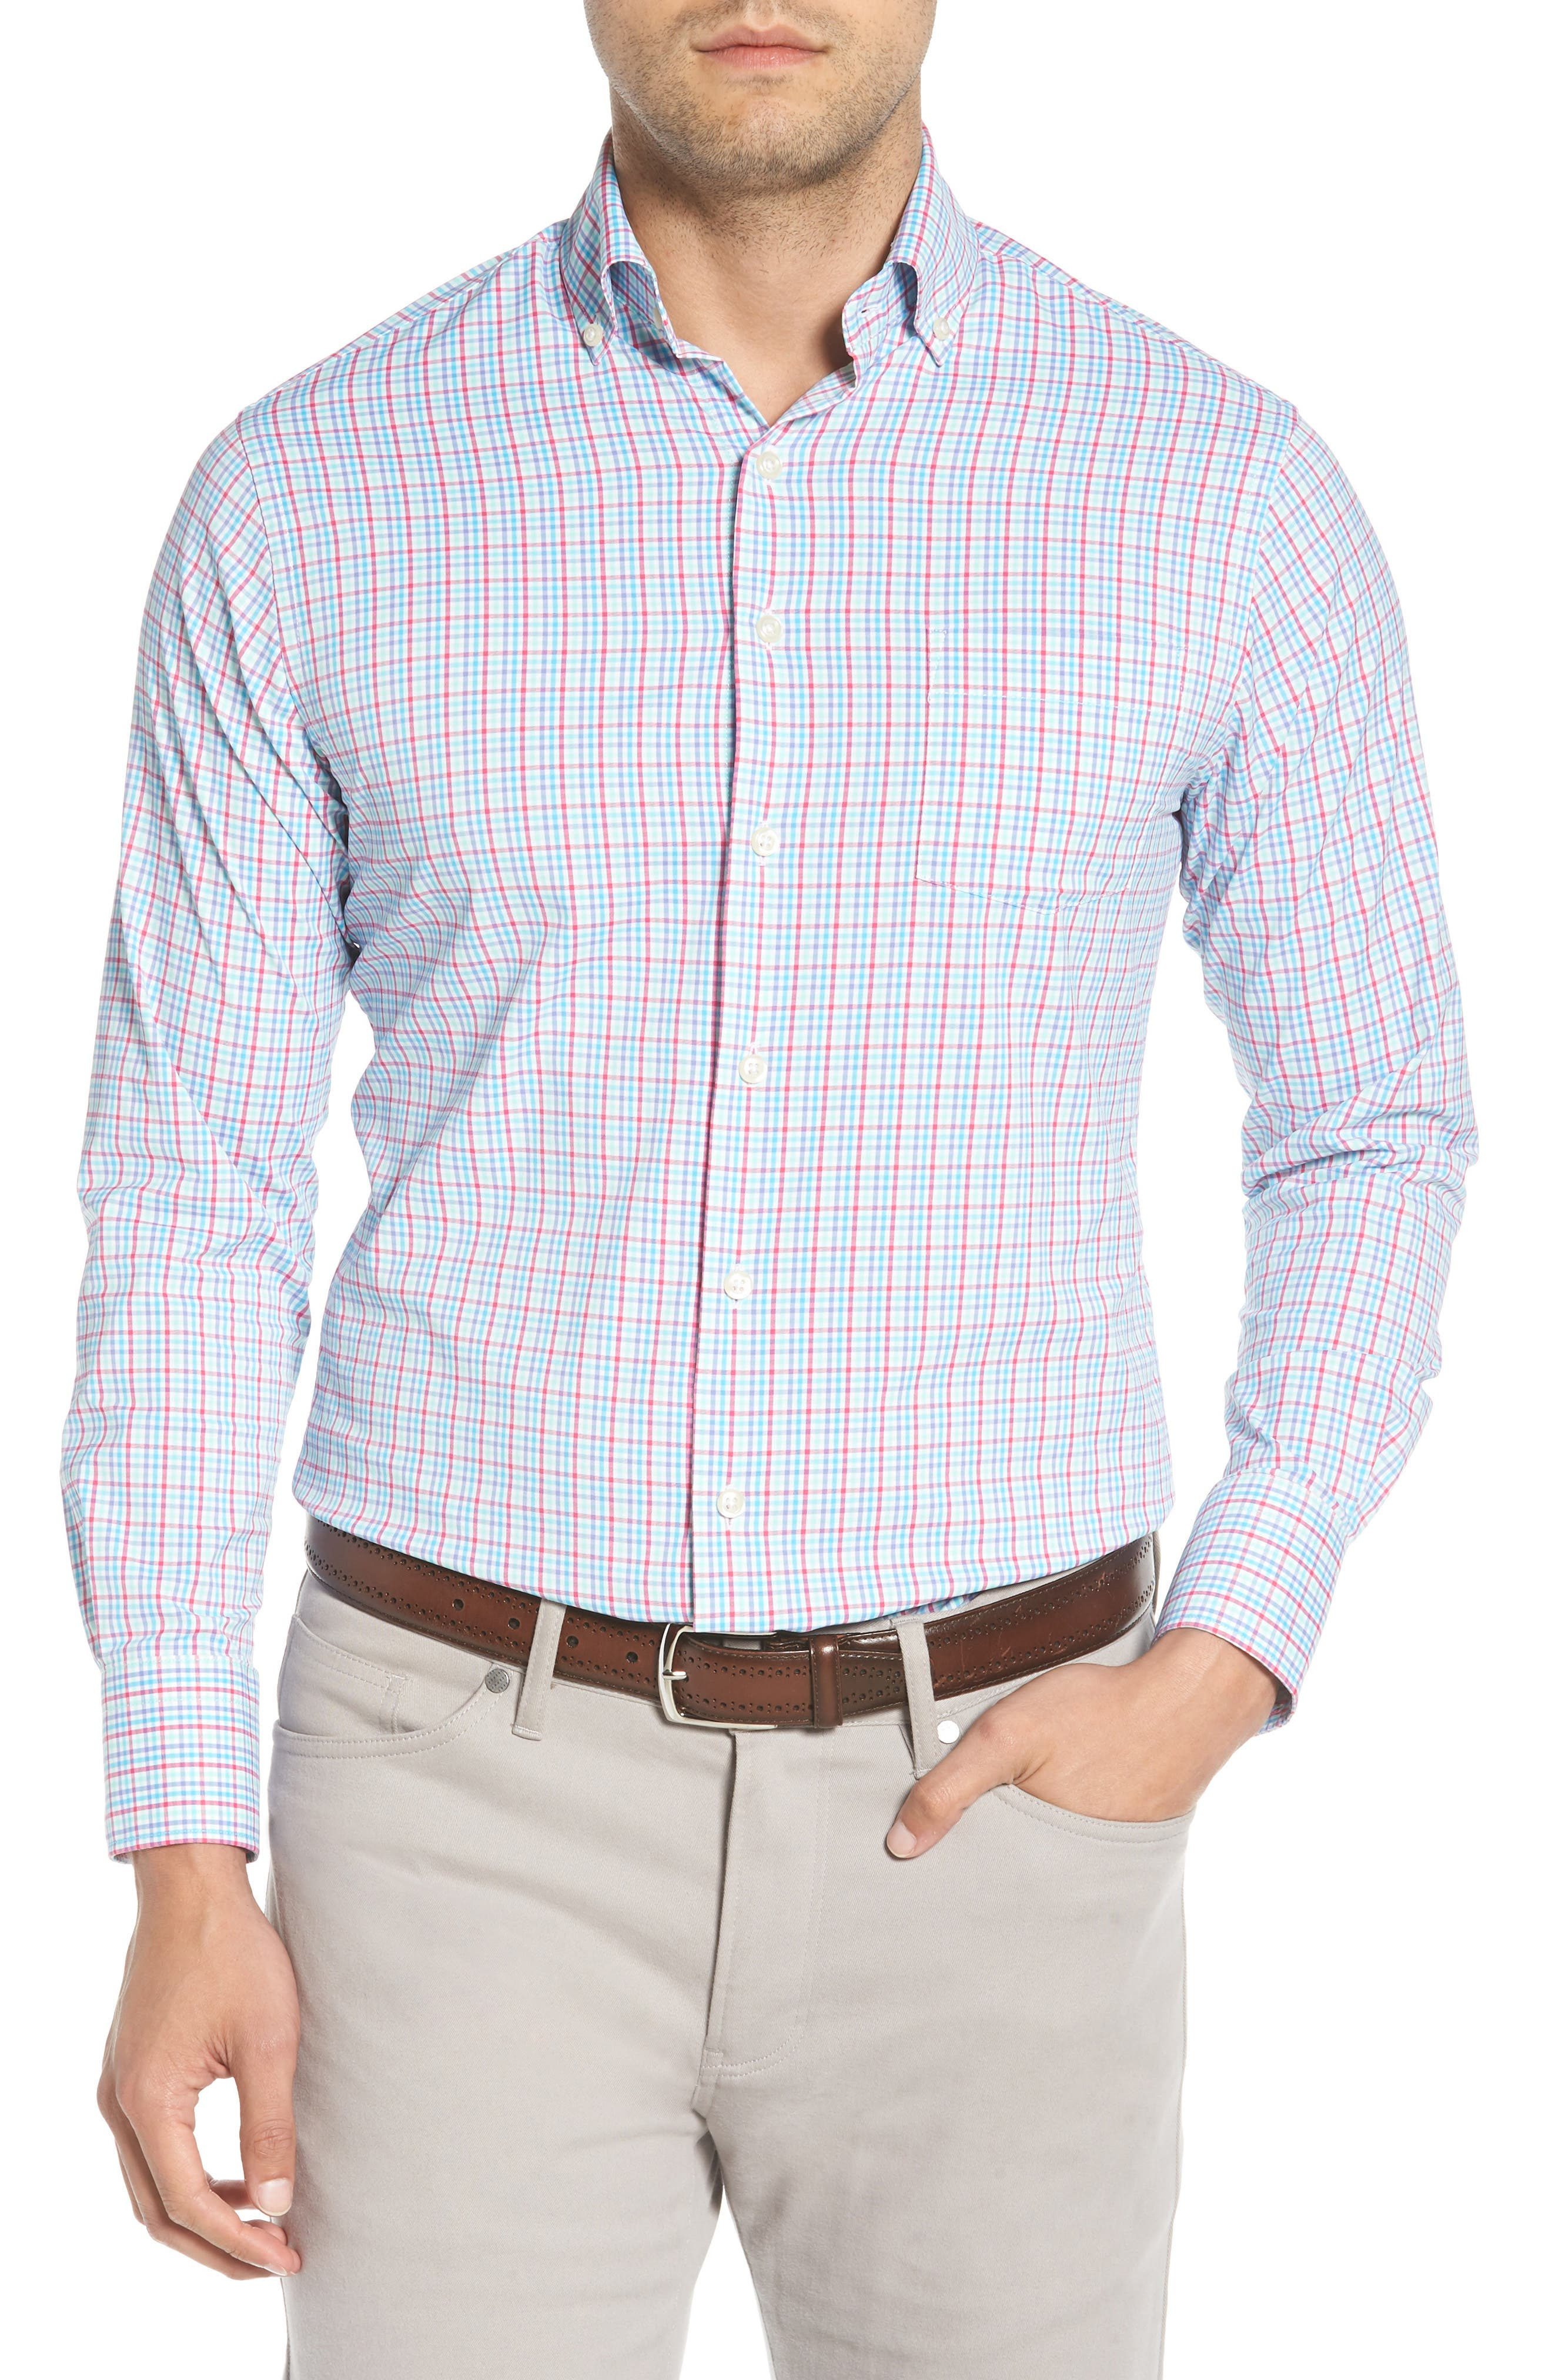 PETER MILLAR Smedes Regular Fit Check Performance Sport Shirt, Main, color, 100